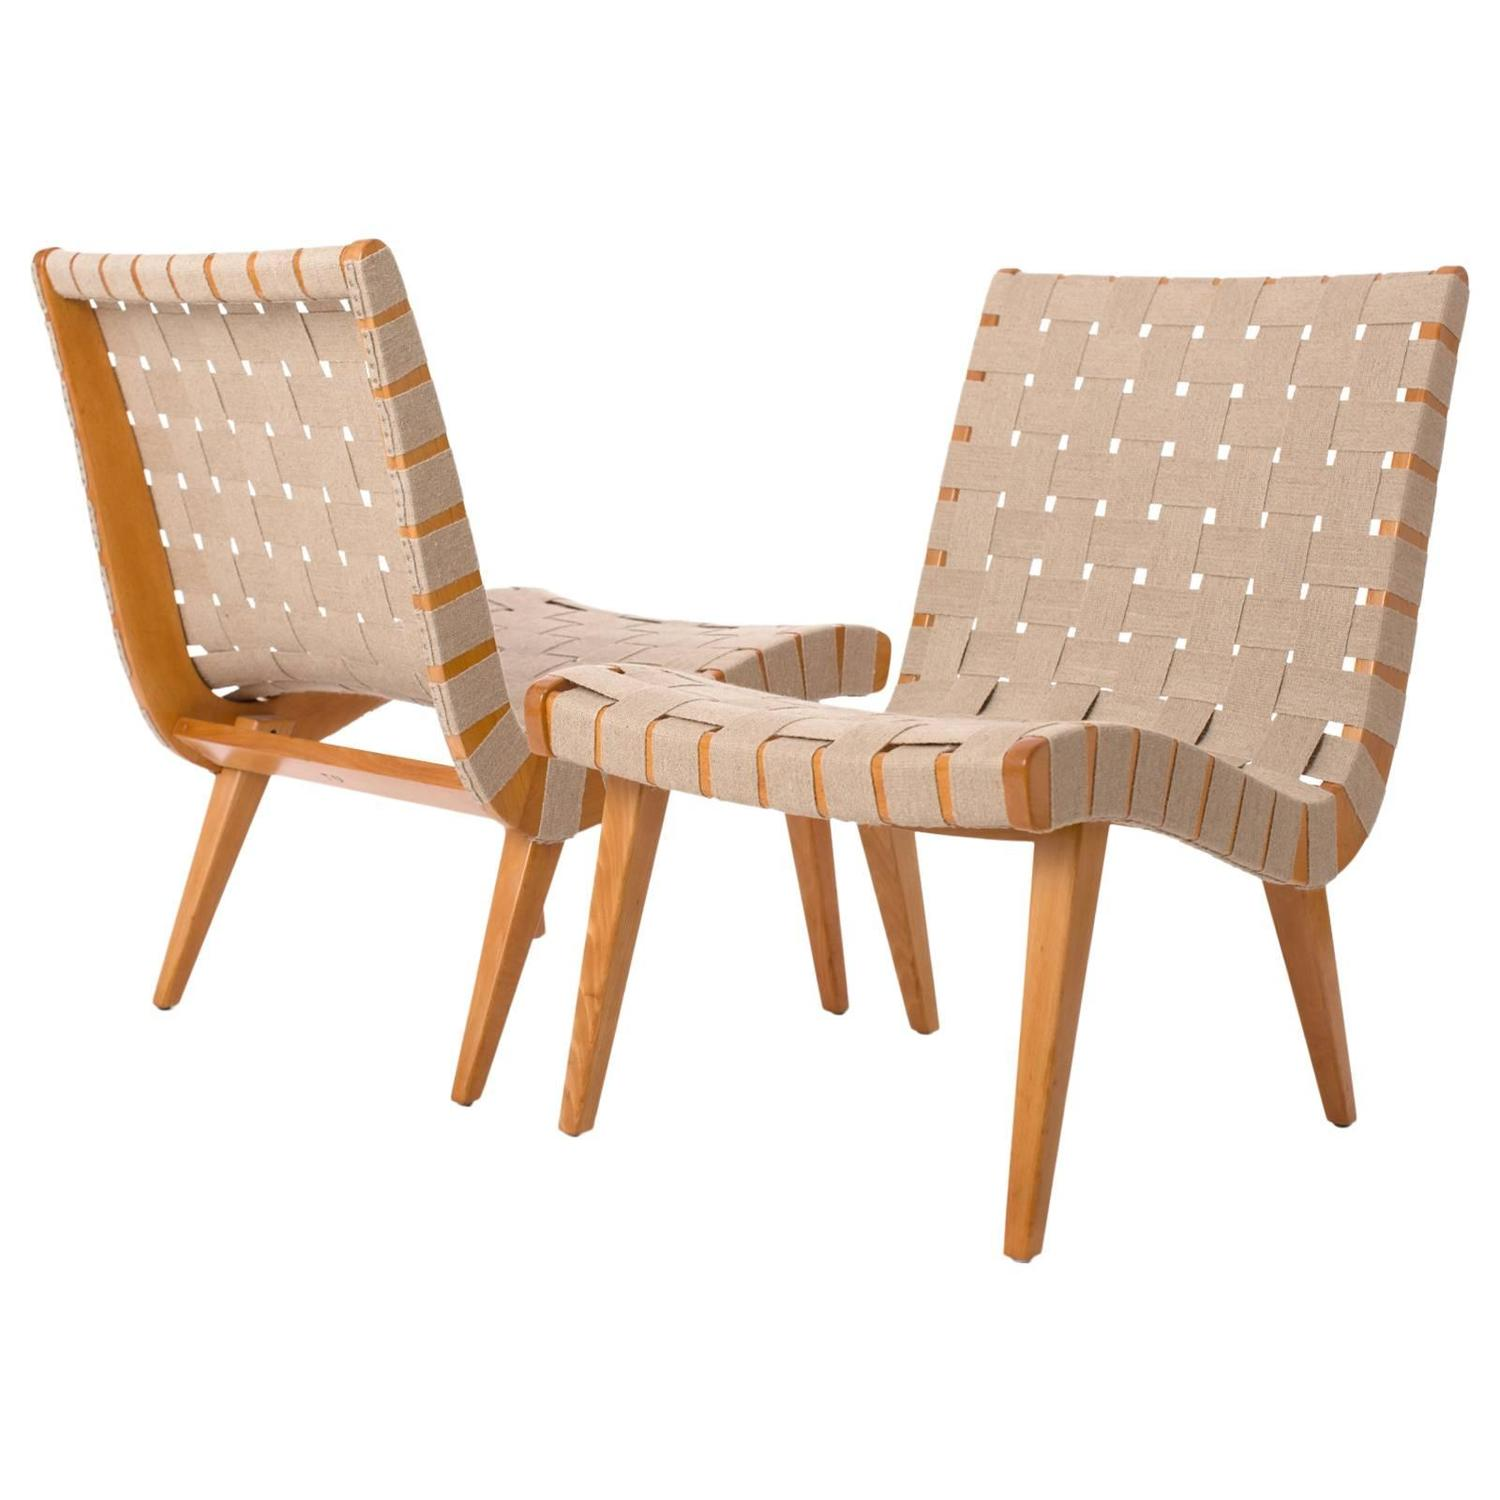 Jens Risom Side Chair Czech Lounge Chairs By Jens Risom For Knoll 1960s Set Of Two At